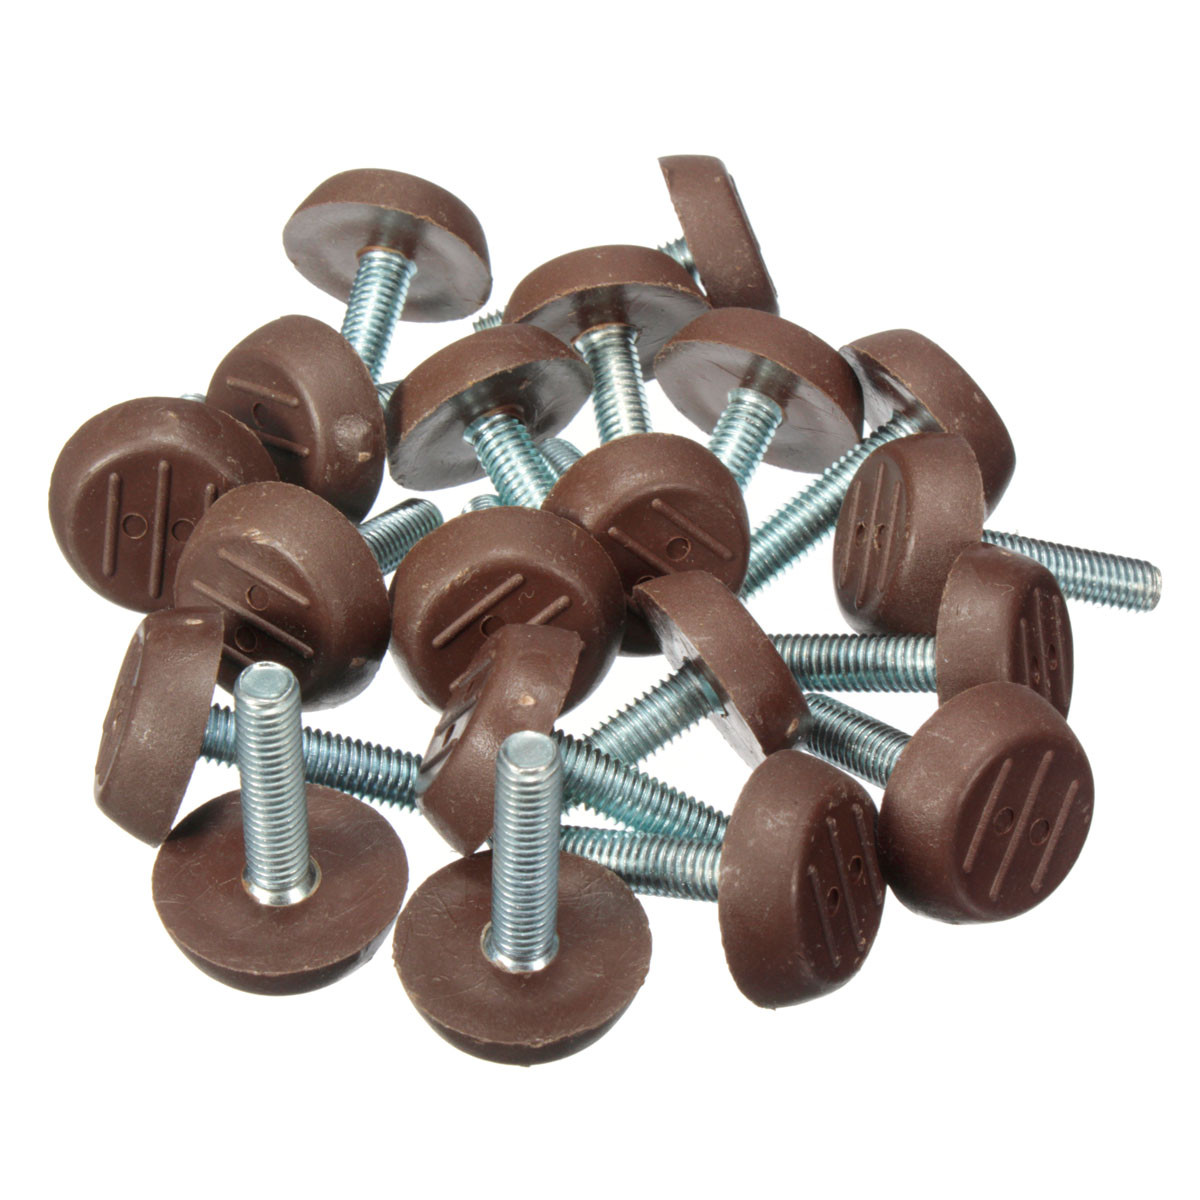 threaded chair glides steel for hospital 20x m6 adjustable screw glide feet leveling foot